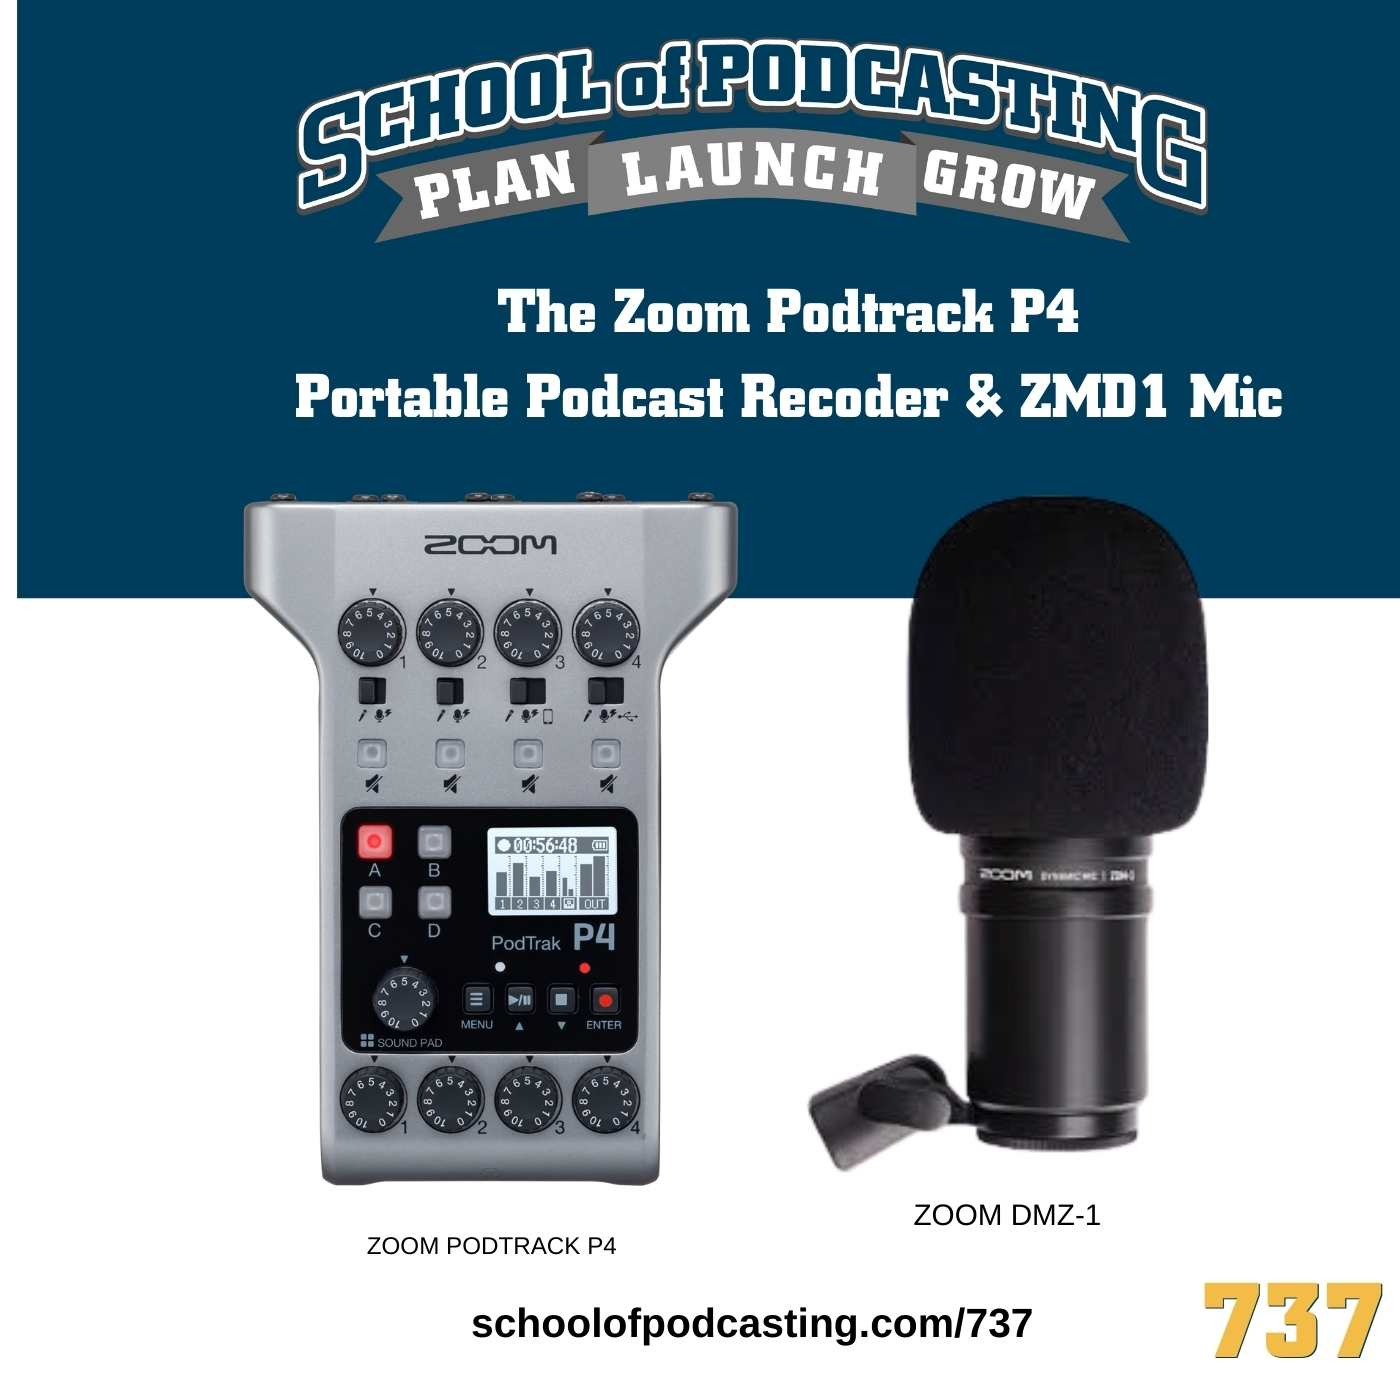 The Zoom Podtrack P4 Portable Podcast Recorder